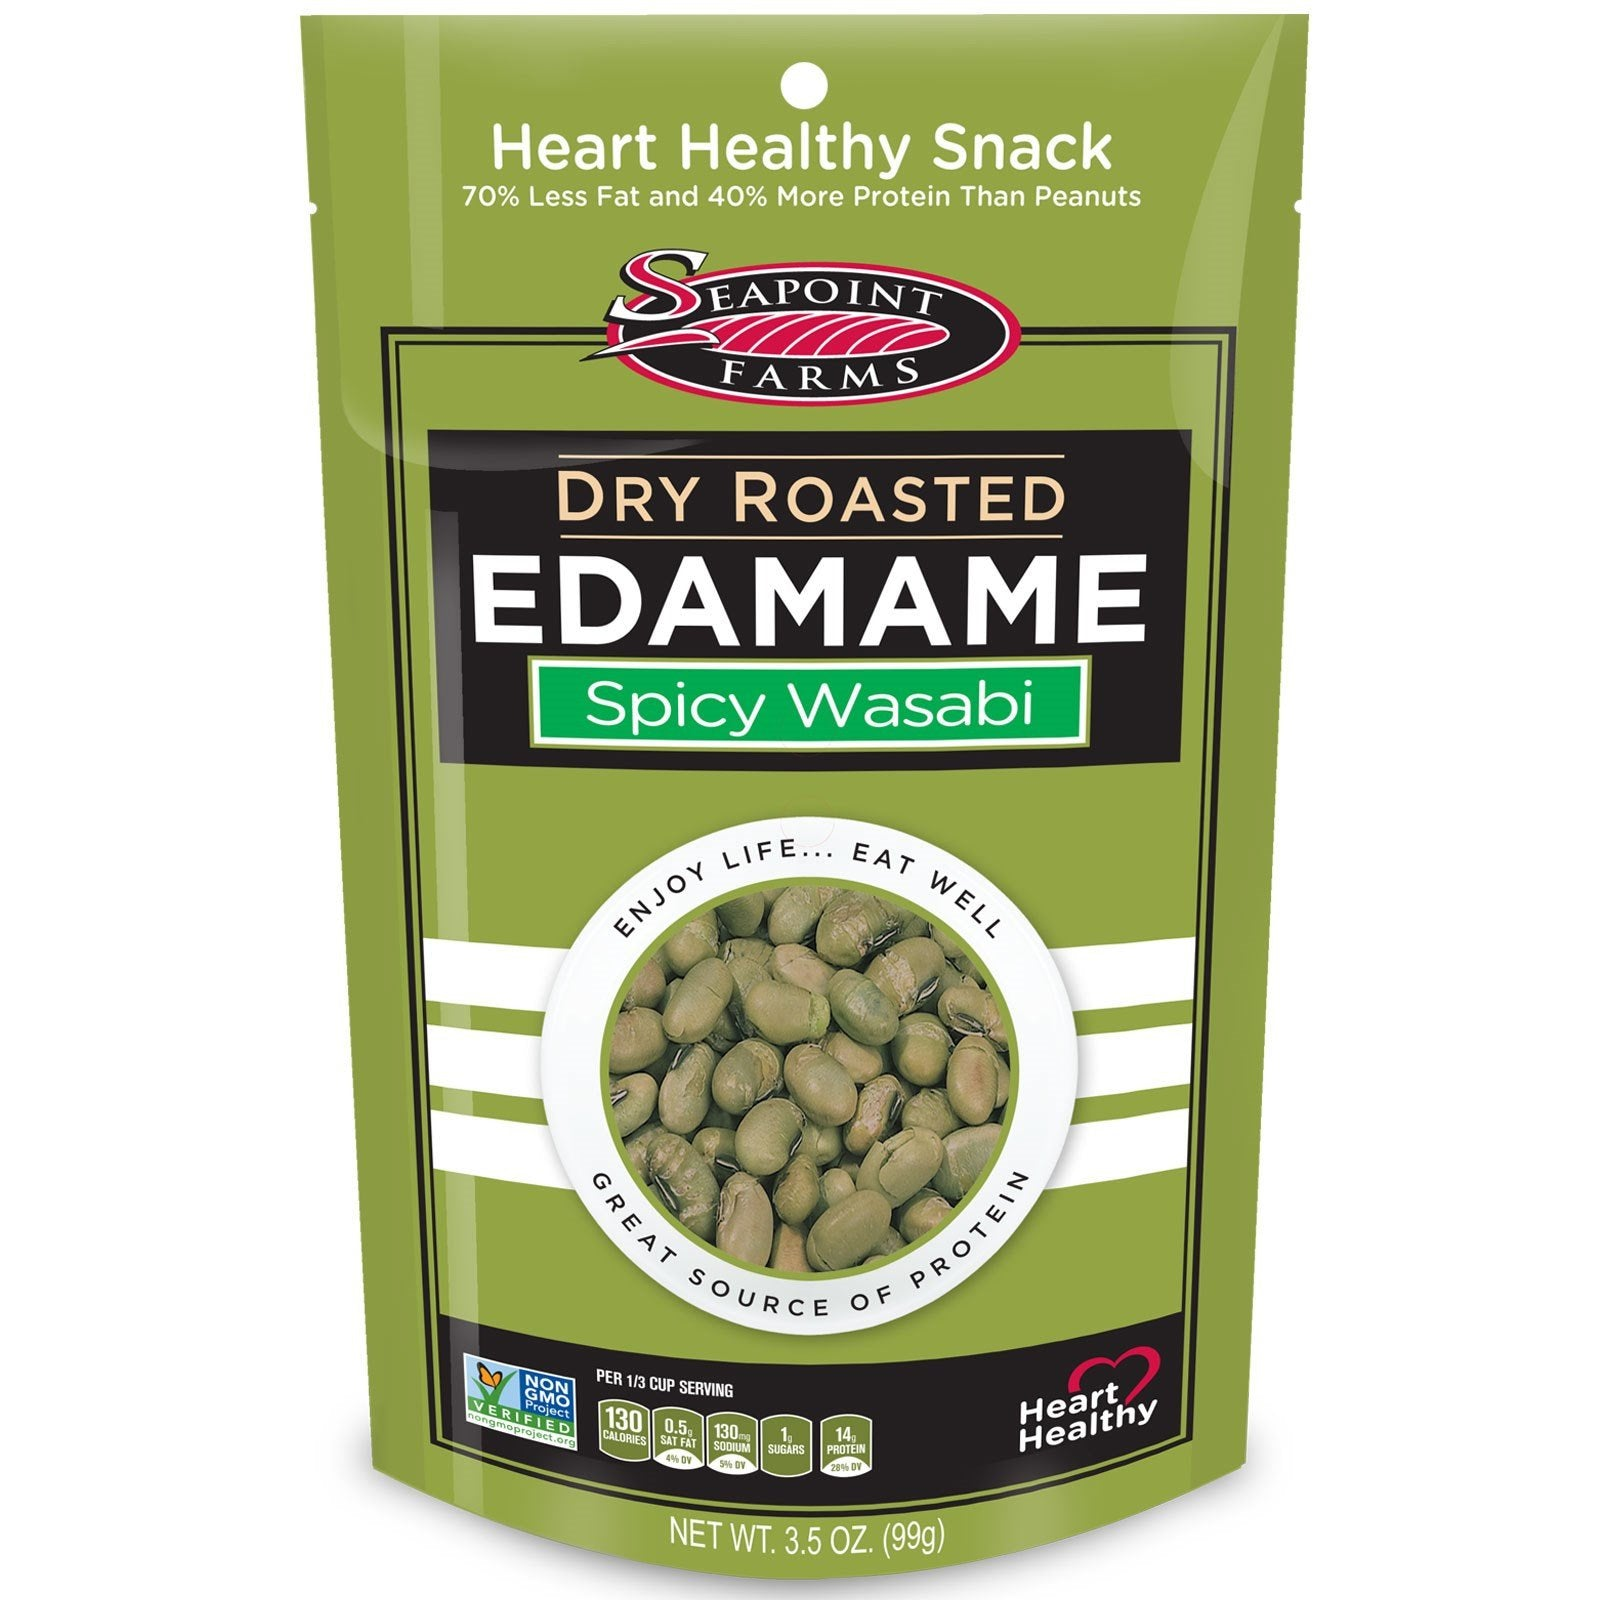 Seapoint Farms Dry Roasted Edamame Wasabi 3 5 Oz Low Carb Canada